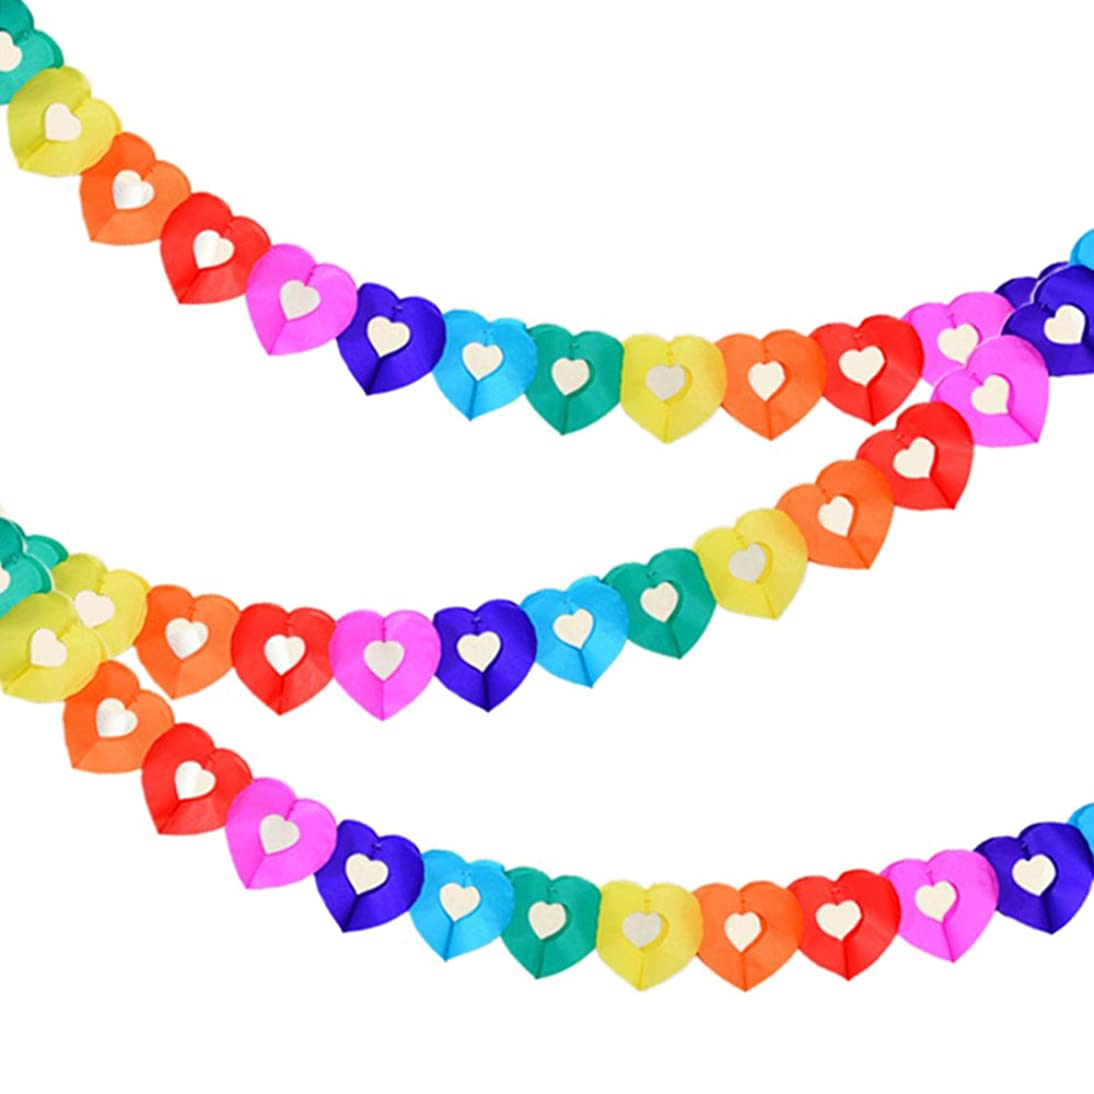 Party Supplies Favors Banners Garland for Kids Party, Colorful Rainbow Tissue Paper Decorations Heart Shape